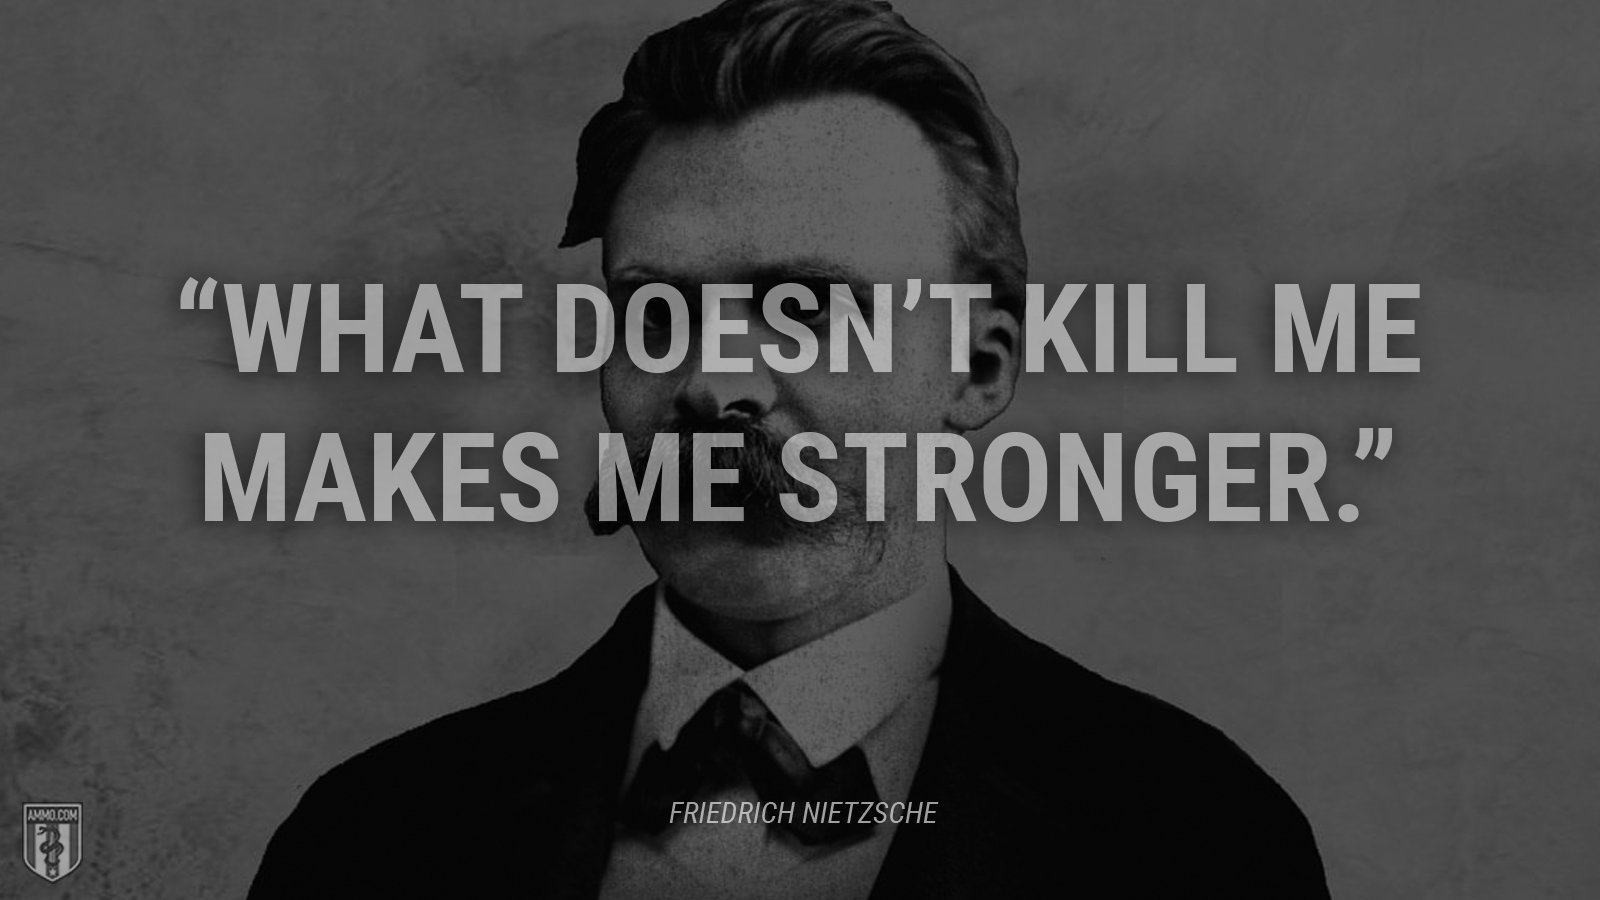 """What doesn't kill me makes me stronger."" - Friedrich Nietzsche"